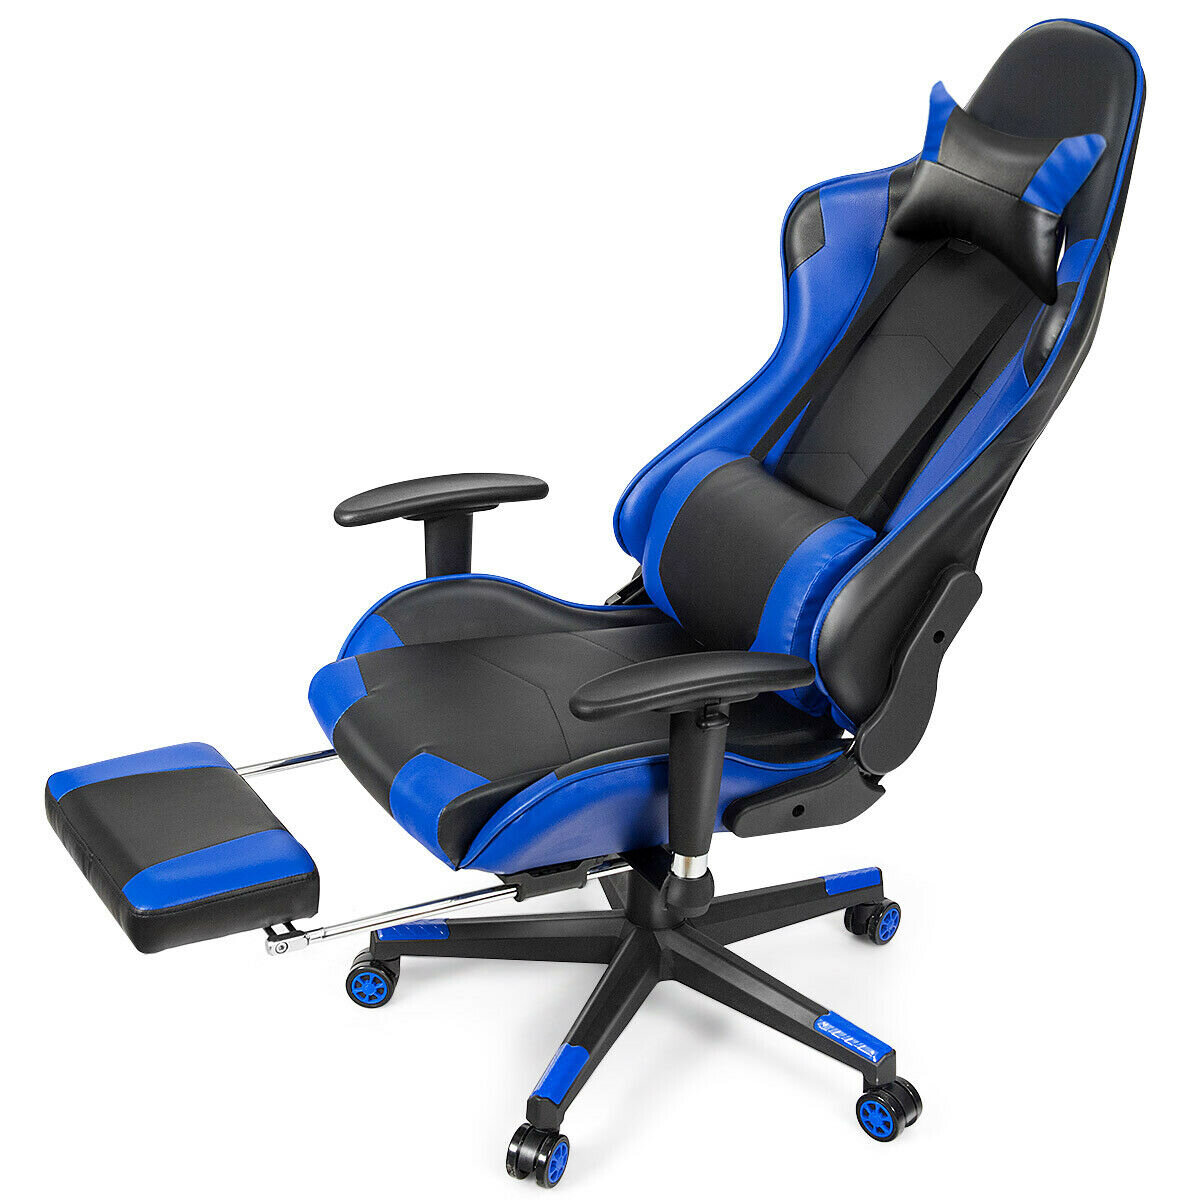 FORCLOVER Massage Gaming Chair Reclining Racing Office Chair-Blue